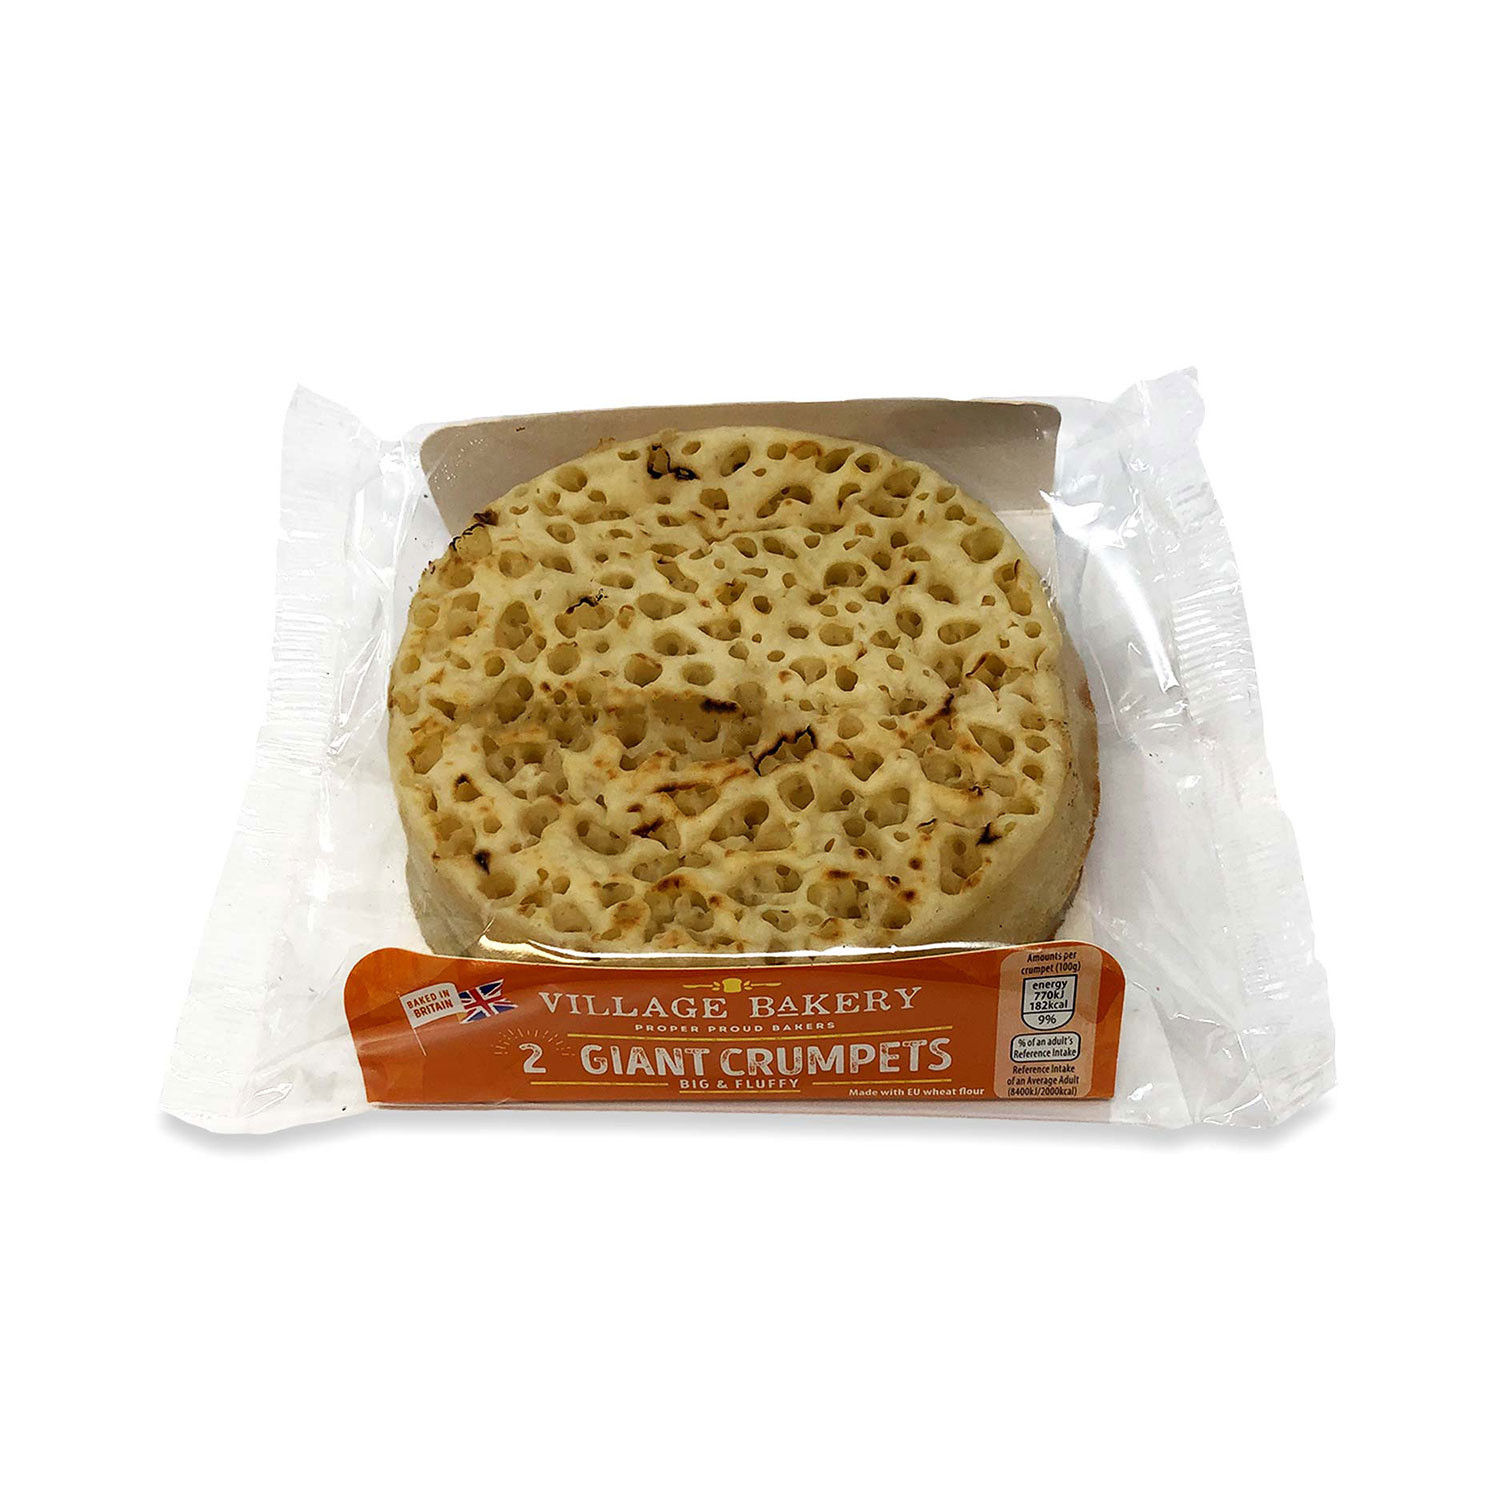 2 Giant Crumpets